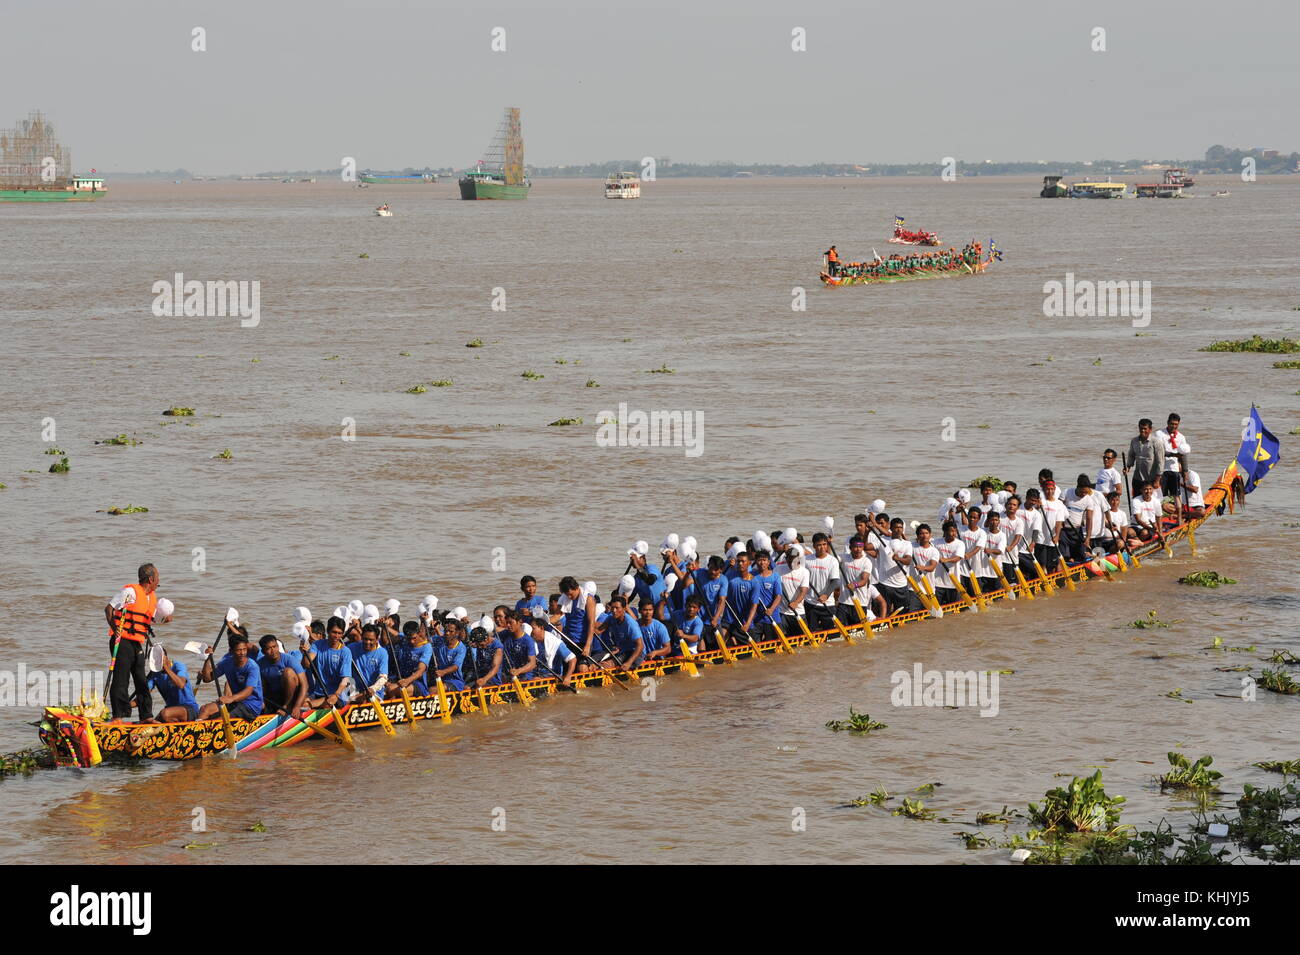 Phnom Penh celebrates Bon Om Touk, The Cambodian Water Festival, w/ longboat racing on The Tonle Sap River. credit: - Stock Image